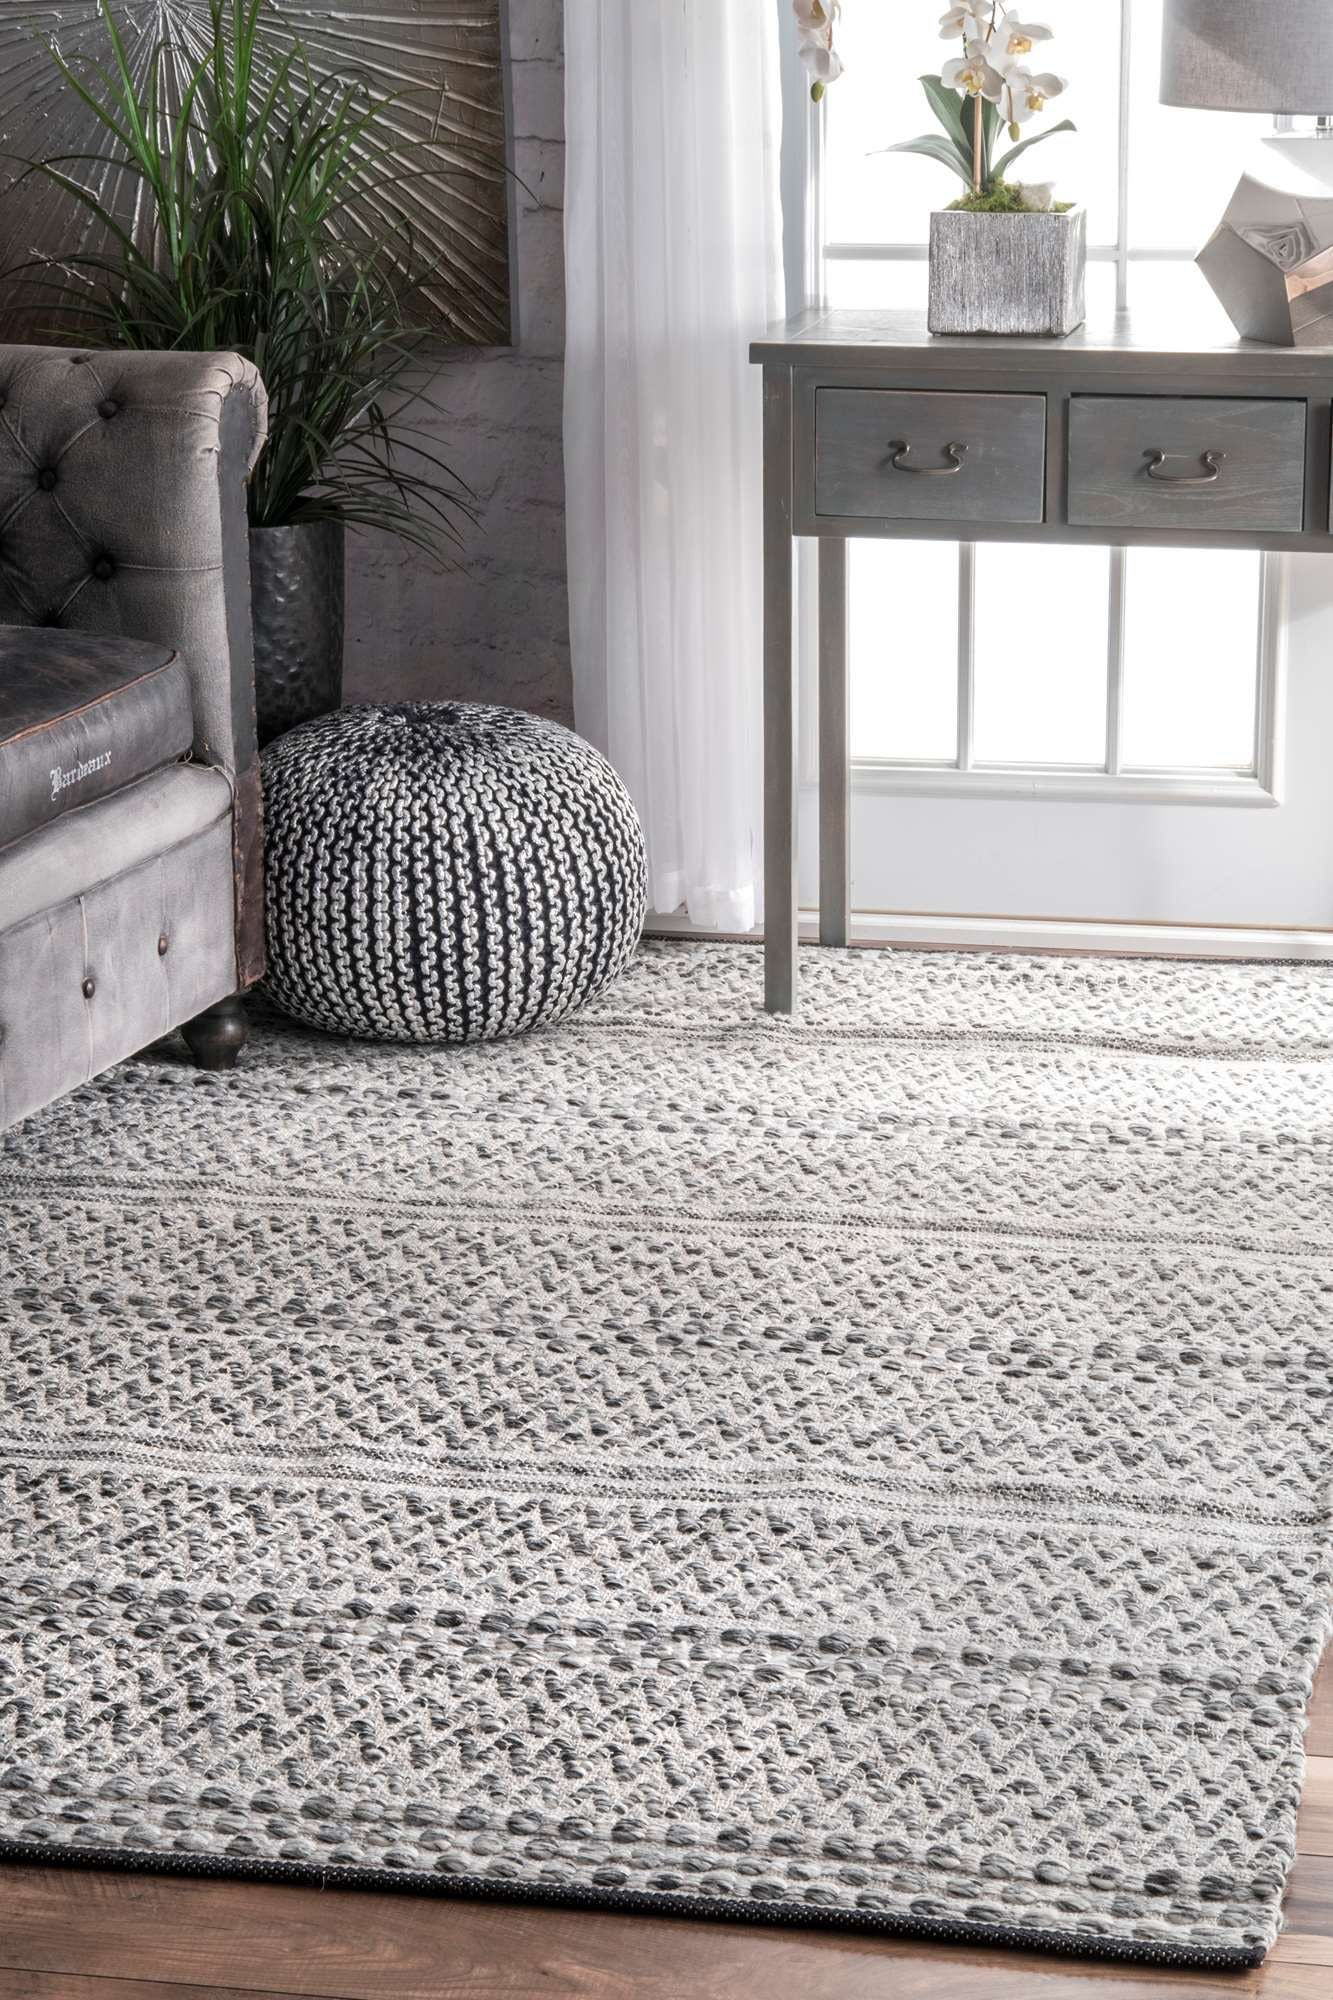 10 Actually Stylish Indoor Outdoor Rugs We Re Loving Right